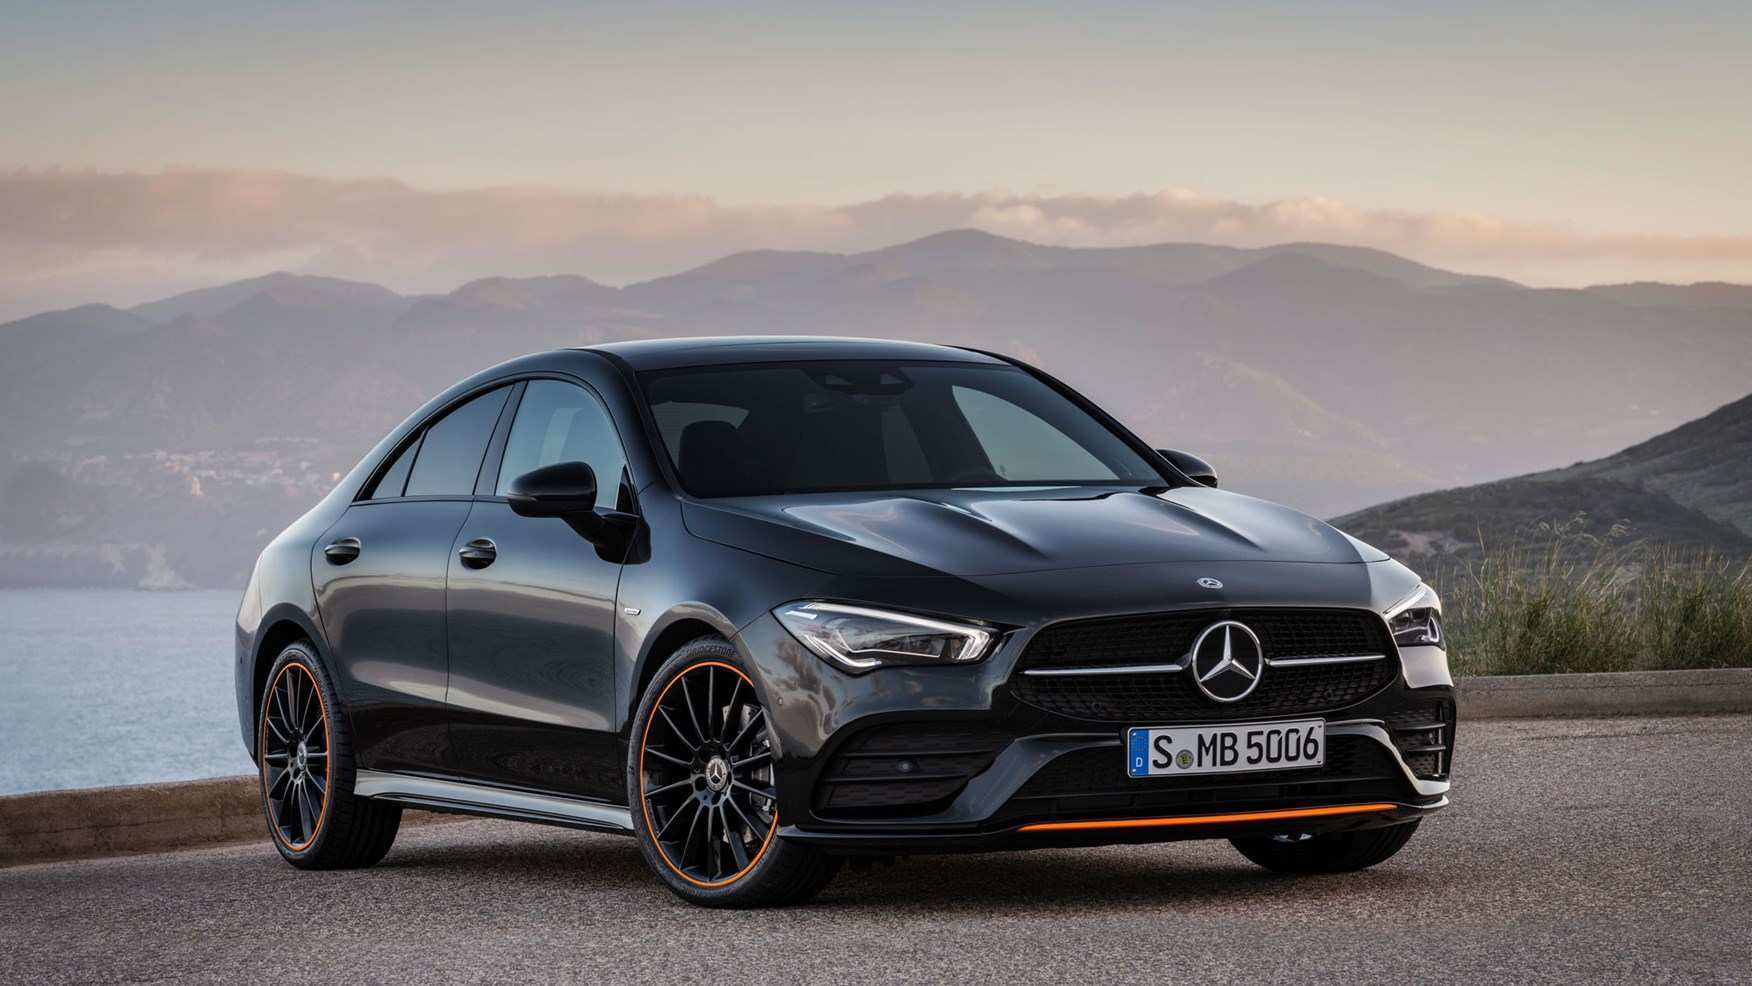 91 Great New Mercedes Hybrid Cars 2019 Price And Release Date Concept by New Mercedes Hybrid Cars 2019 Price And Release Date